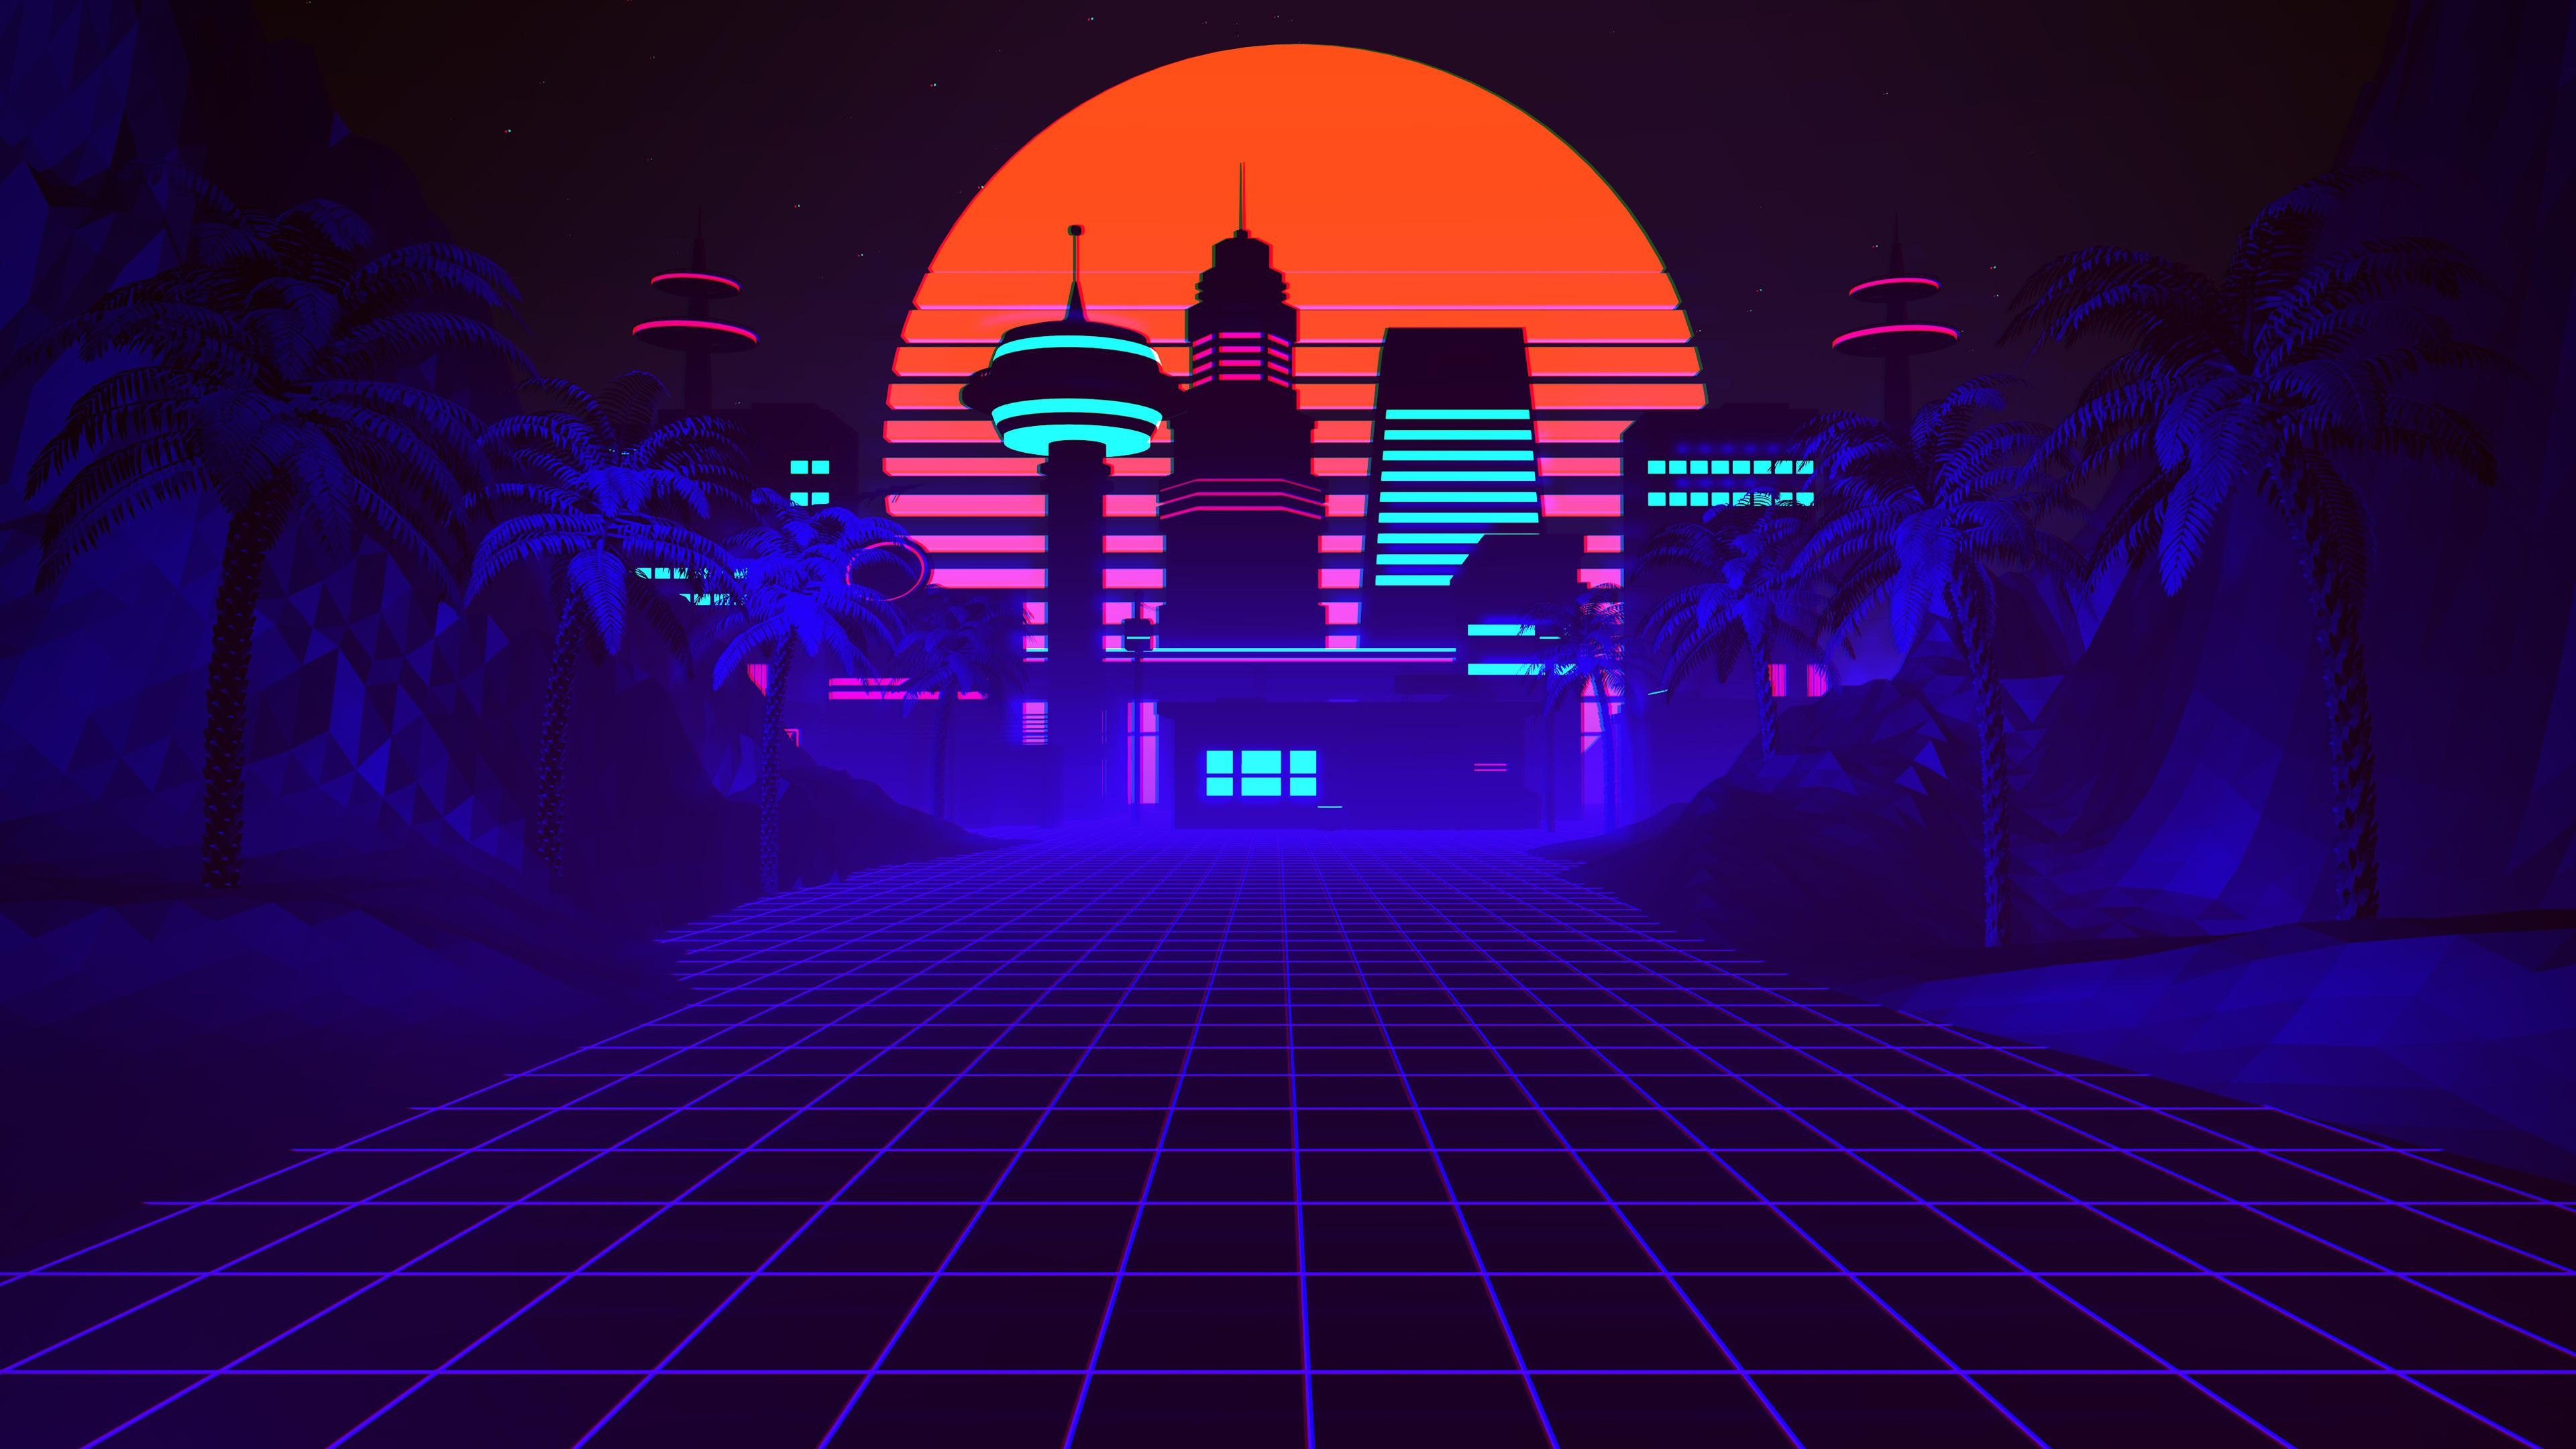 synthwave 4K wallpapers for your desktop or mobile screen free and